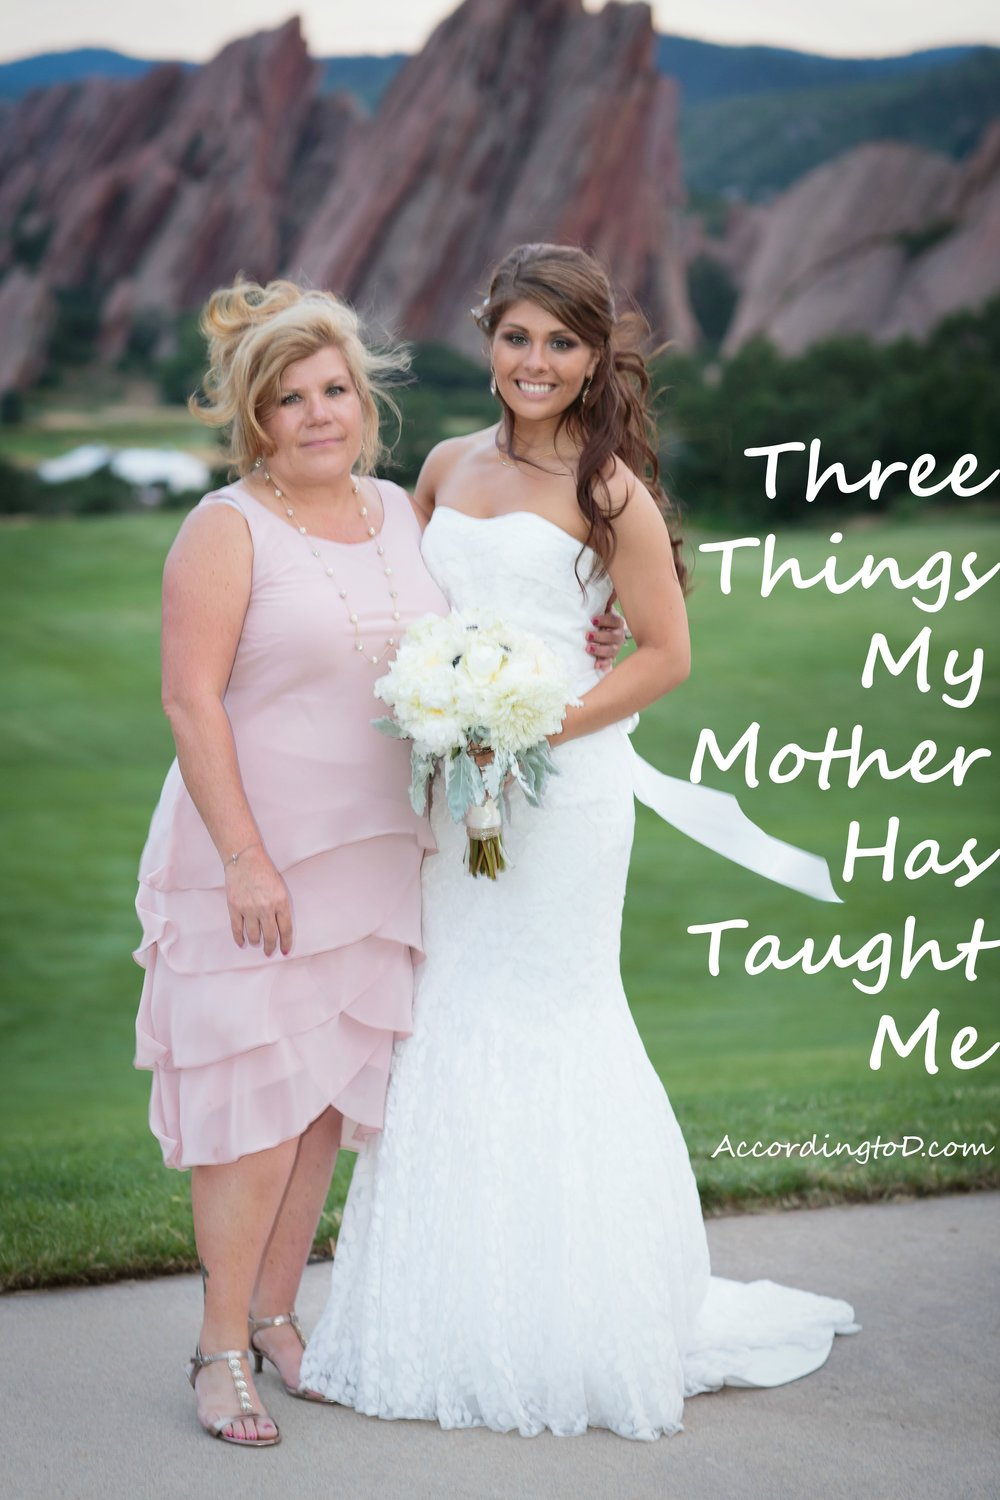 three things my mother has taught me .jpg